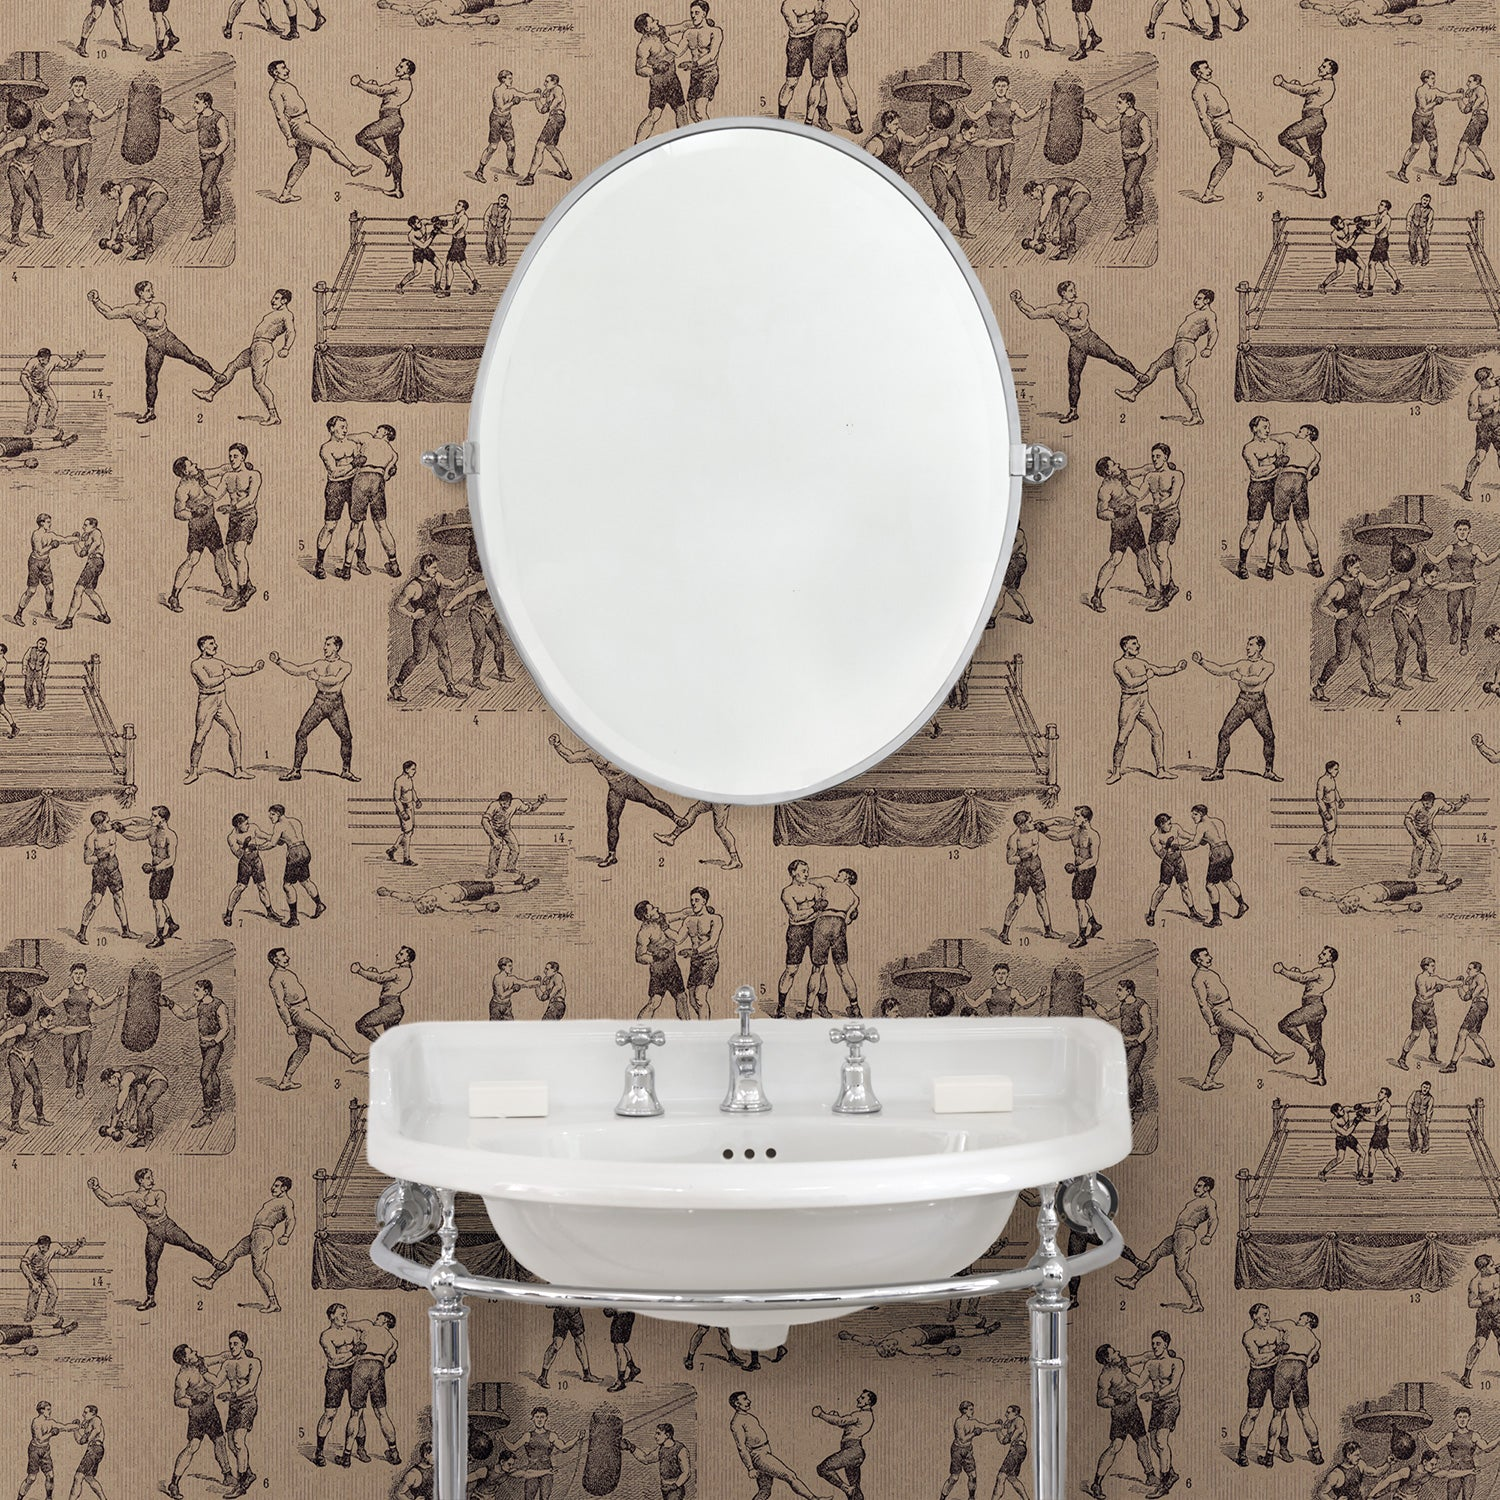 Bathroom featuring a Wallpaper featuring a vintage illustrated boxing scene